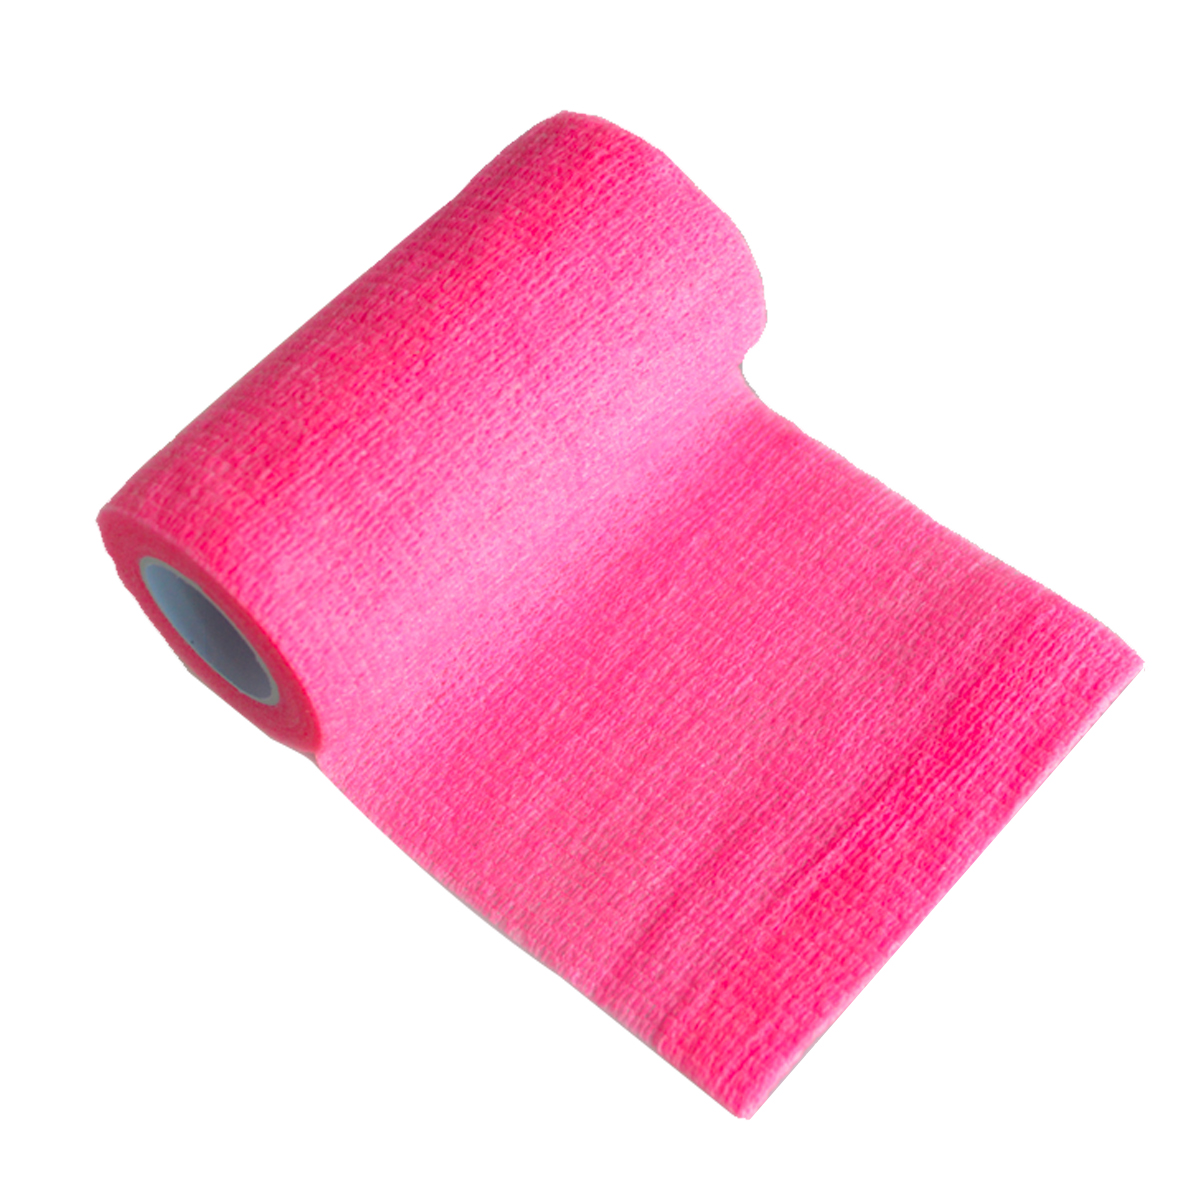 24Pcs/Lot 10cm*5m Waterproof Cohesive Elastic Flexible Bandage Self Adhesive Nonwoven Bandage Sports Tape Pink Color 48pcs lot waterproof self adhesive nonwoven bandage first aid kit sport protect tape cohesive wound wrap for hand 5cm 4 5m